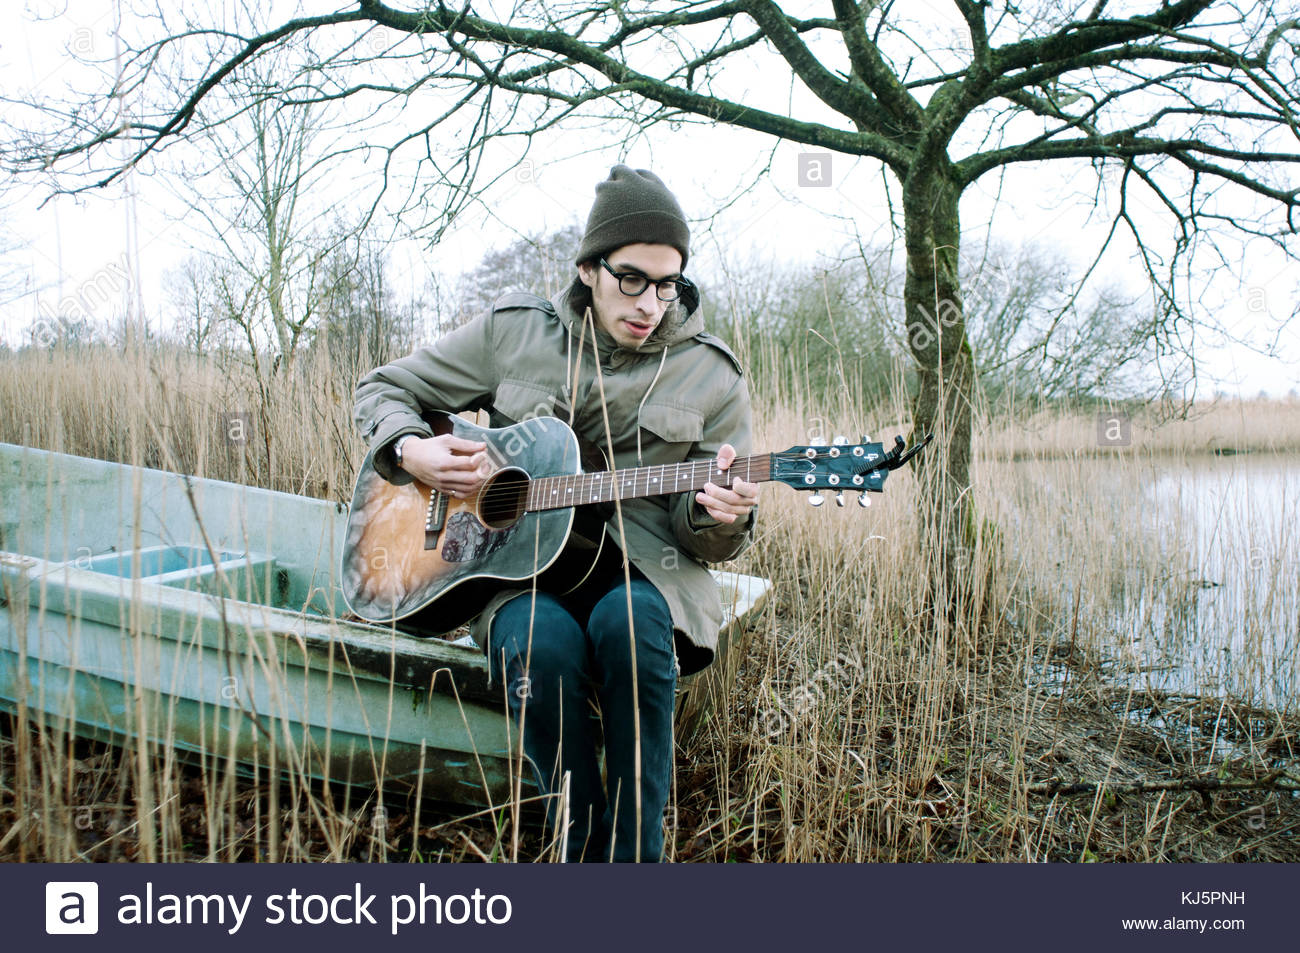 Guy playing guitar sitting in a harsh outdoor environment - Stock Image